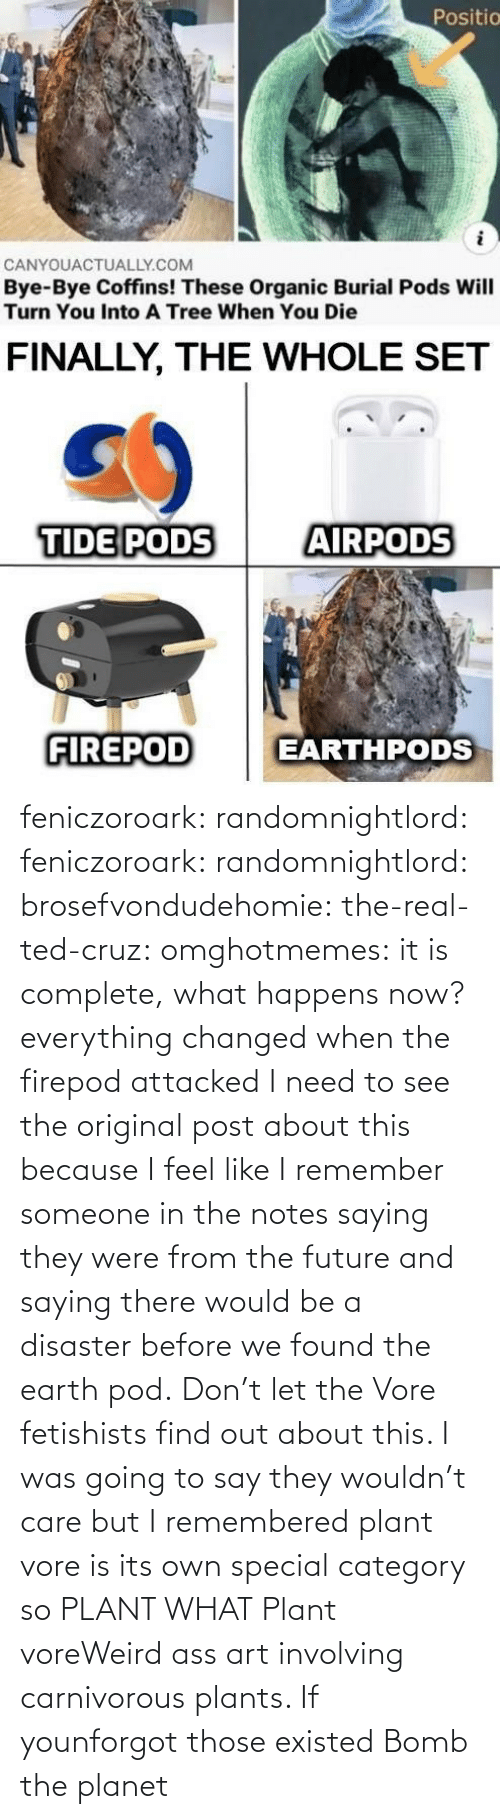 care: feniczoroark:  randomnightlord:  feniczoroark:  randomnightlord:  brosefvondudehomie: the-real-ted-cruz:  omghotmemes: it is complete, what happens now? everything changed when the firepod attacked    I need to see the original post about this because I feel like I remember someone in the notes saying they were from the future and saying there would be a disaster before we found the earth pod.    Don't let the Vore fetishists find out about this.    I was going to say they wouldn't care but I remembered plant vore is its own special category so   PLANT WHAT   Plant voreWeird ass art involving carnivorous plants. If younforgot those existed   Bomb the planet